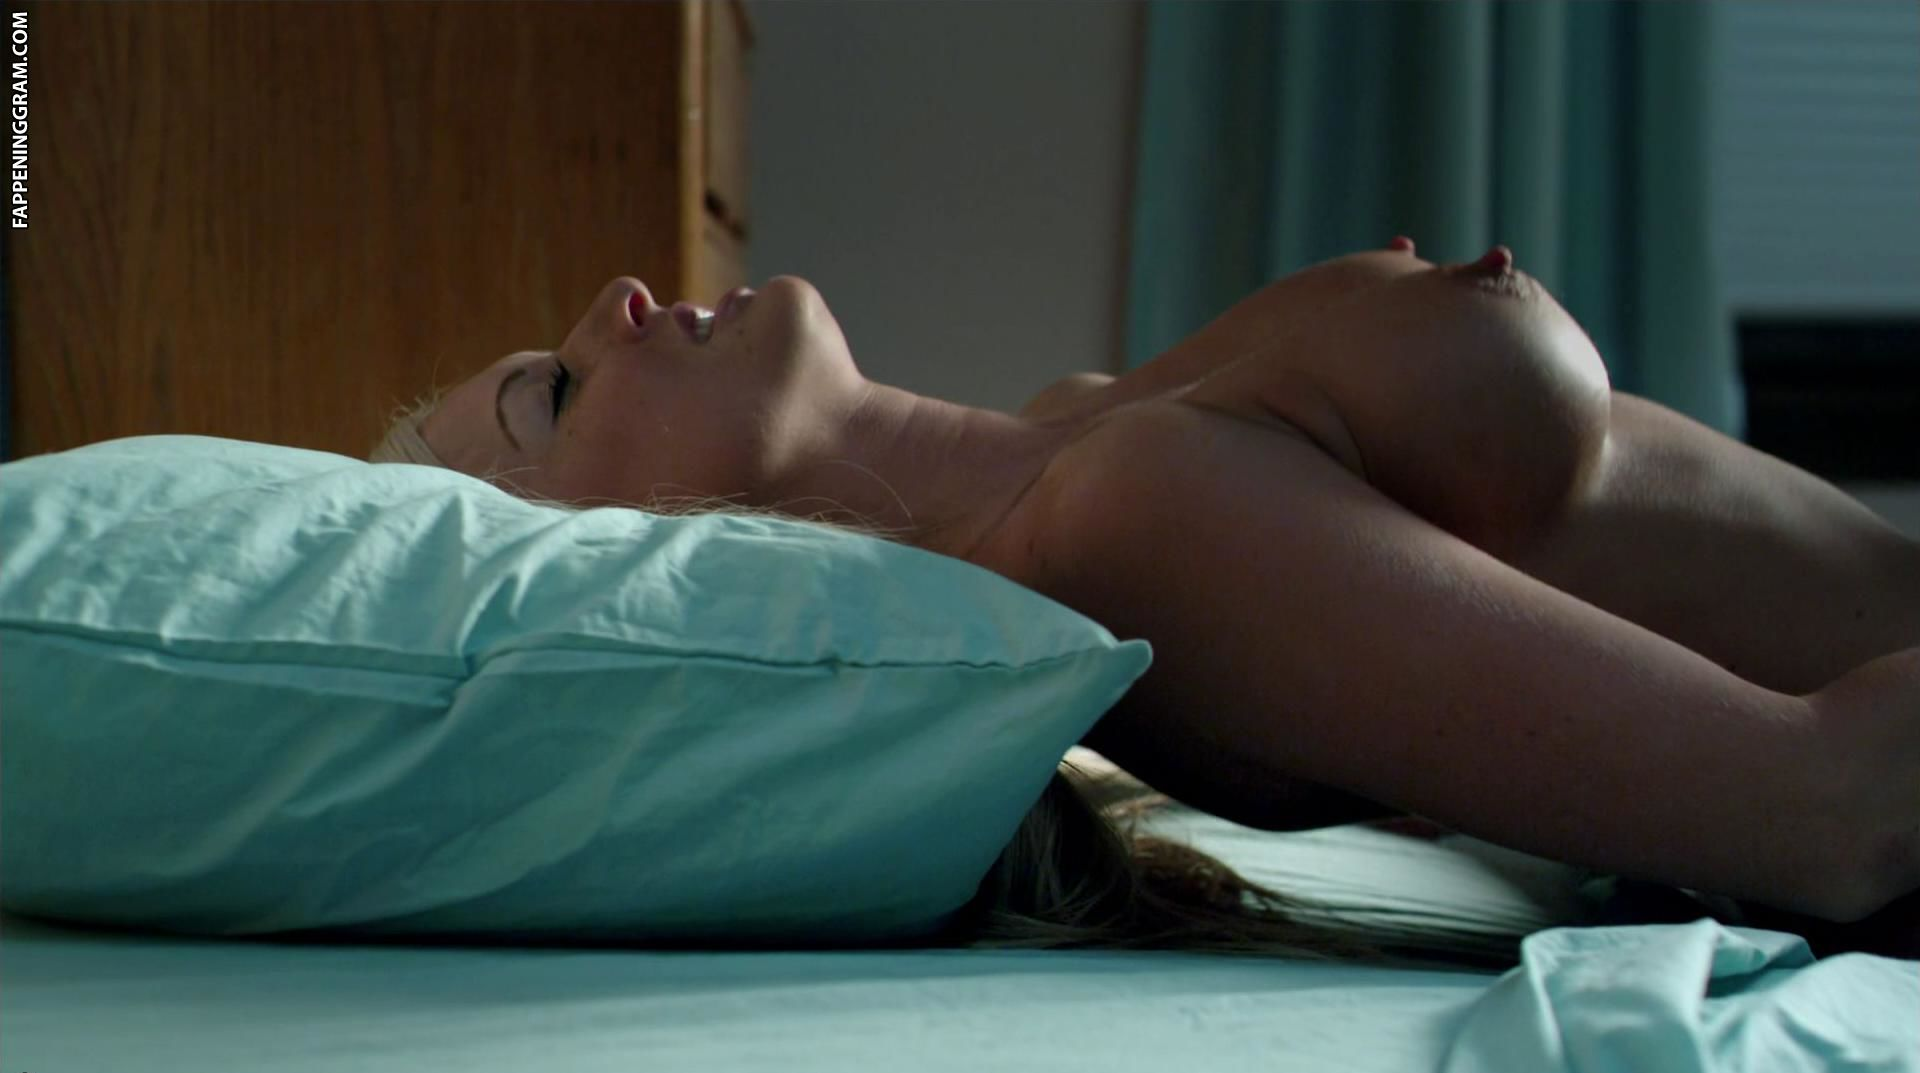 Nicole eggert hot and sexy anne nahabedian nude topless